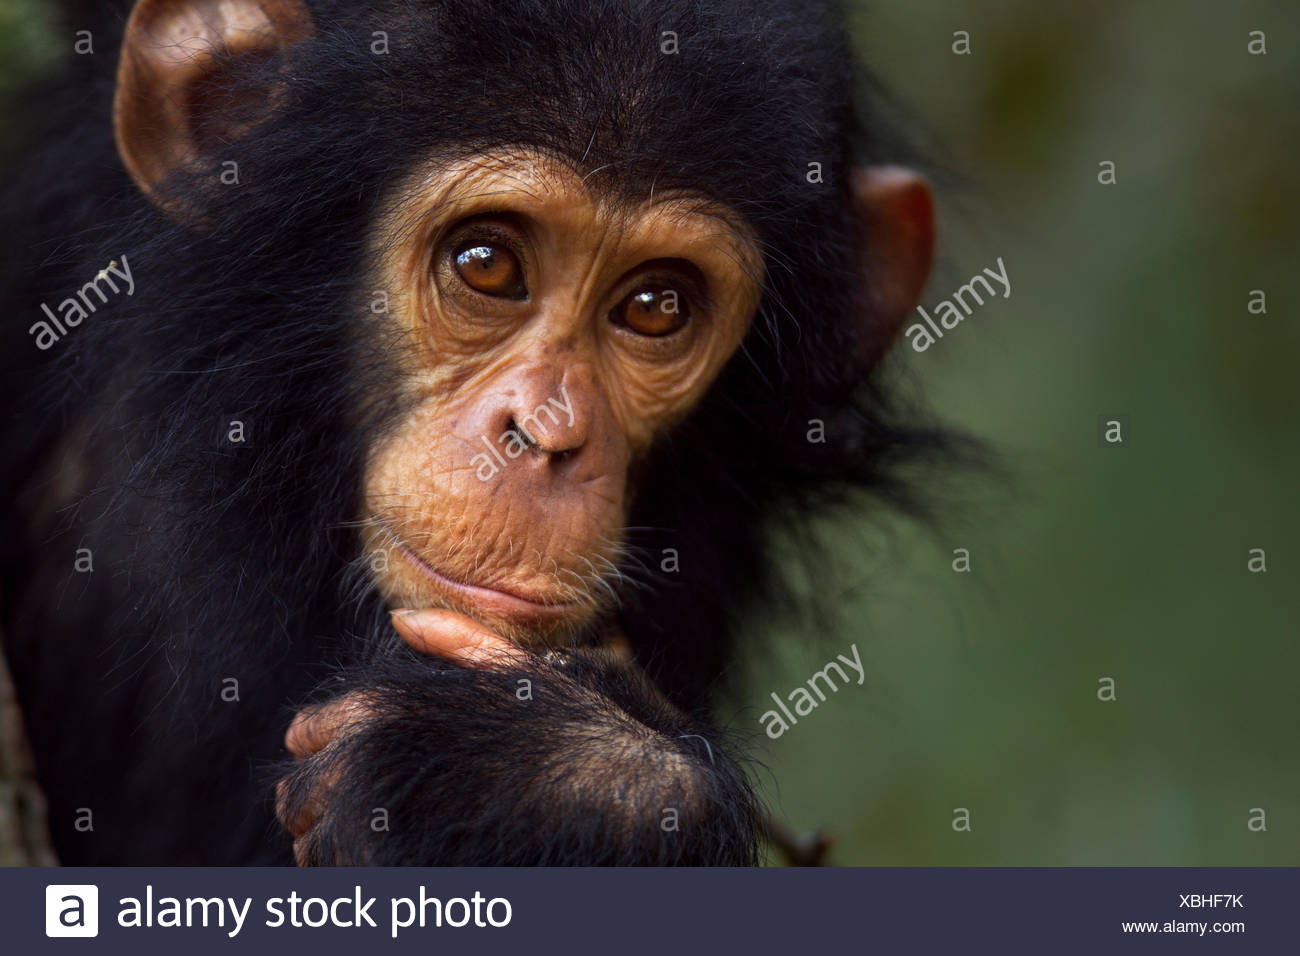 Eastern chimpanzee (Pan troglodytes schweinfurtheii) male baby 'Gizmo' aged 1-2 years portrait. Gombe National Park, Tanzania. - Stock Image